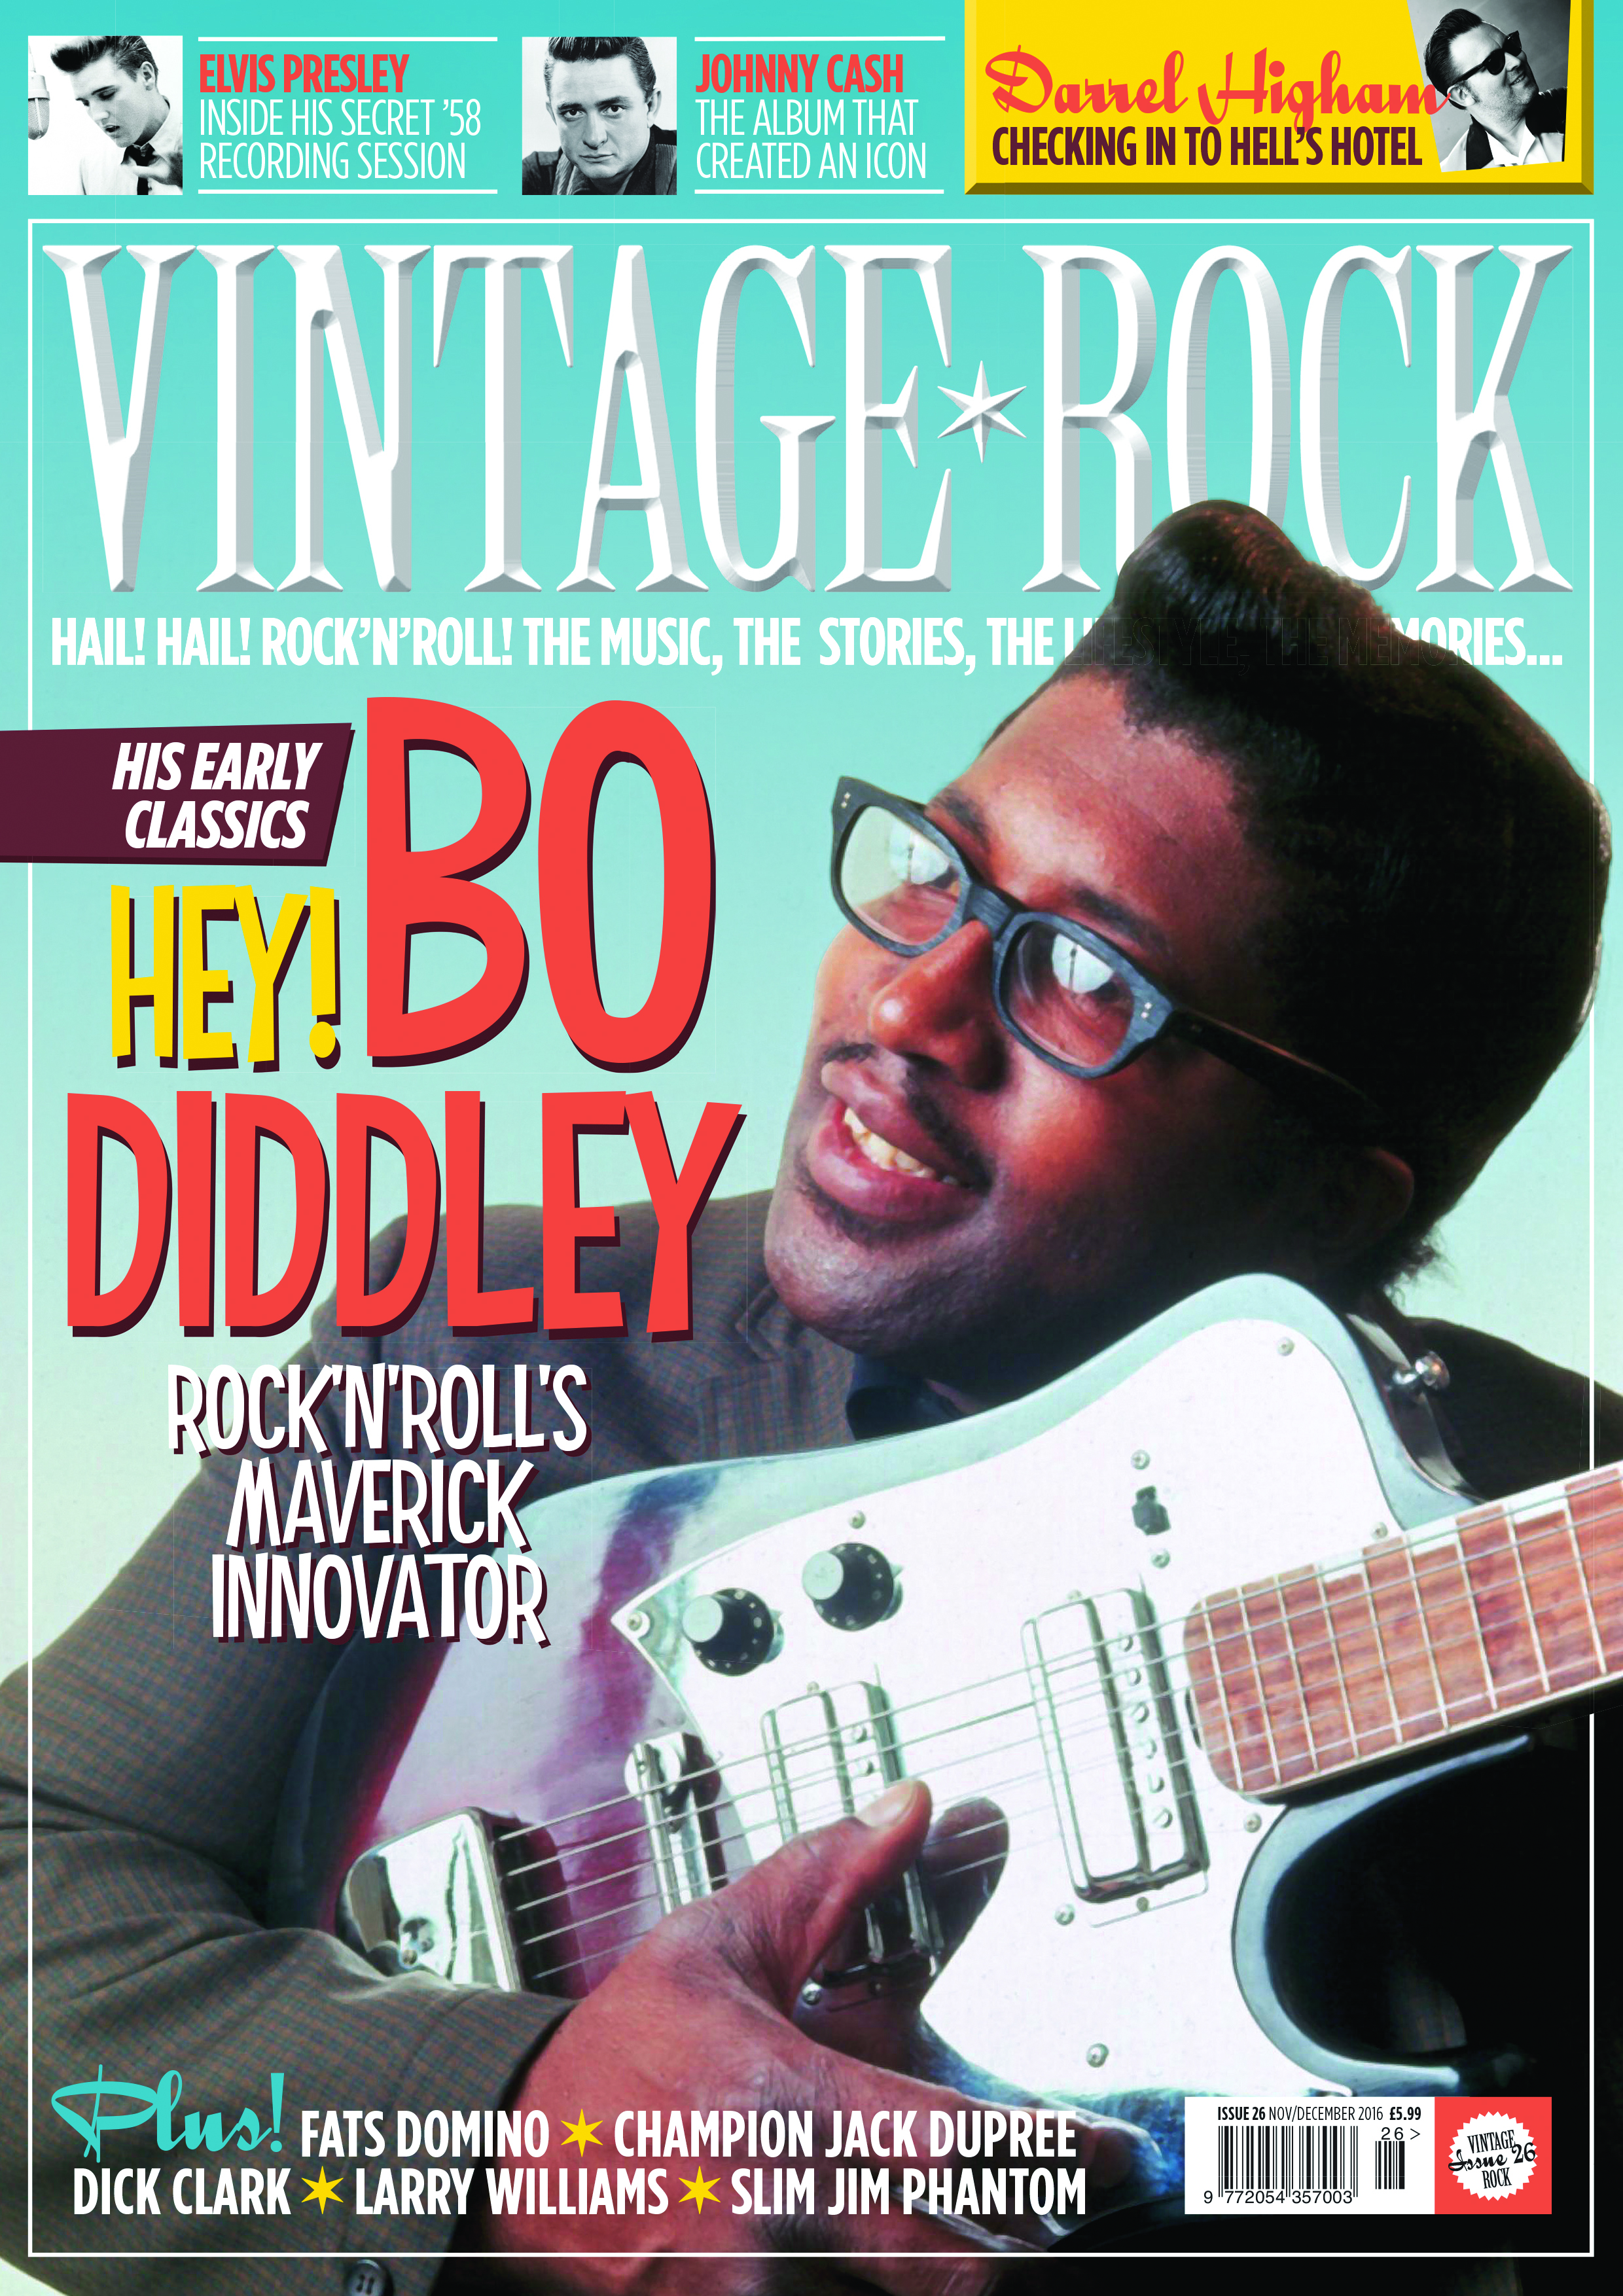 The New Issue of Vintage Rock is out NOW!